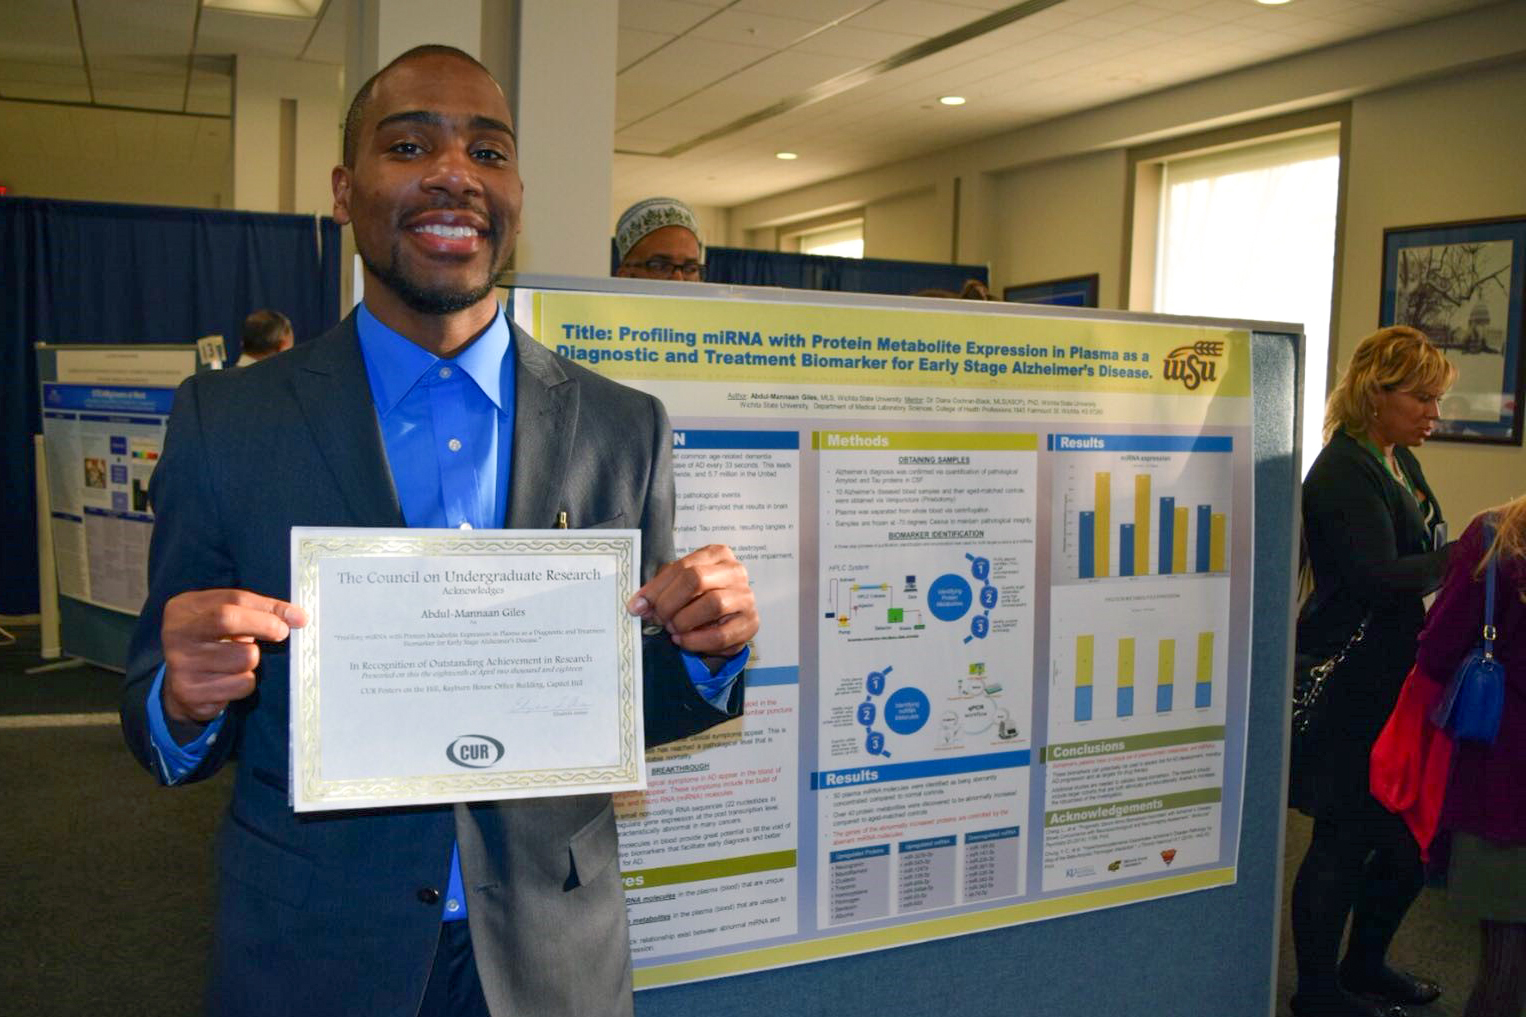 Abdul-Mannaan Giles was invited to present his Alzheimer's research projects at Harvard University and on Capitol Hill., Abdul-Mannaan Giles was invited to present his Alzheimer's research projects at Harvard University and on Capitol Hill.,